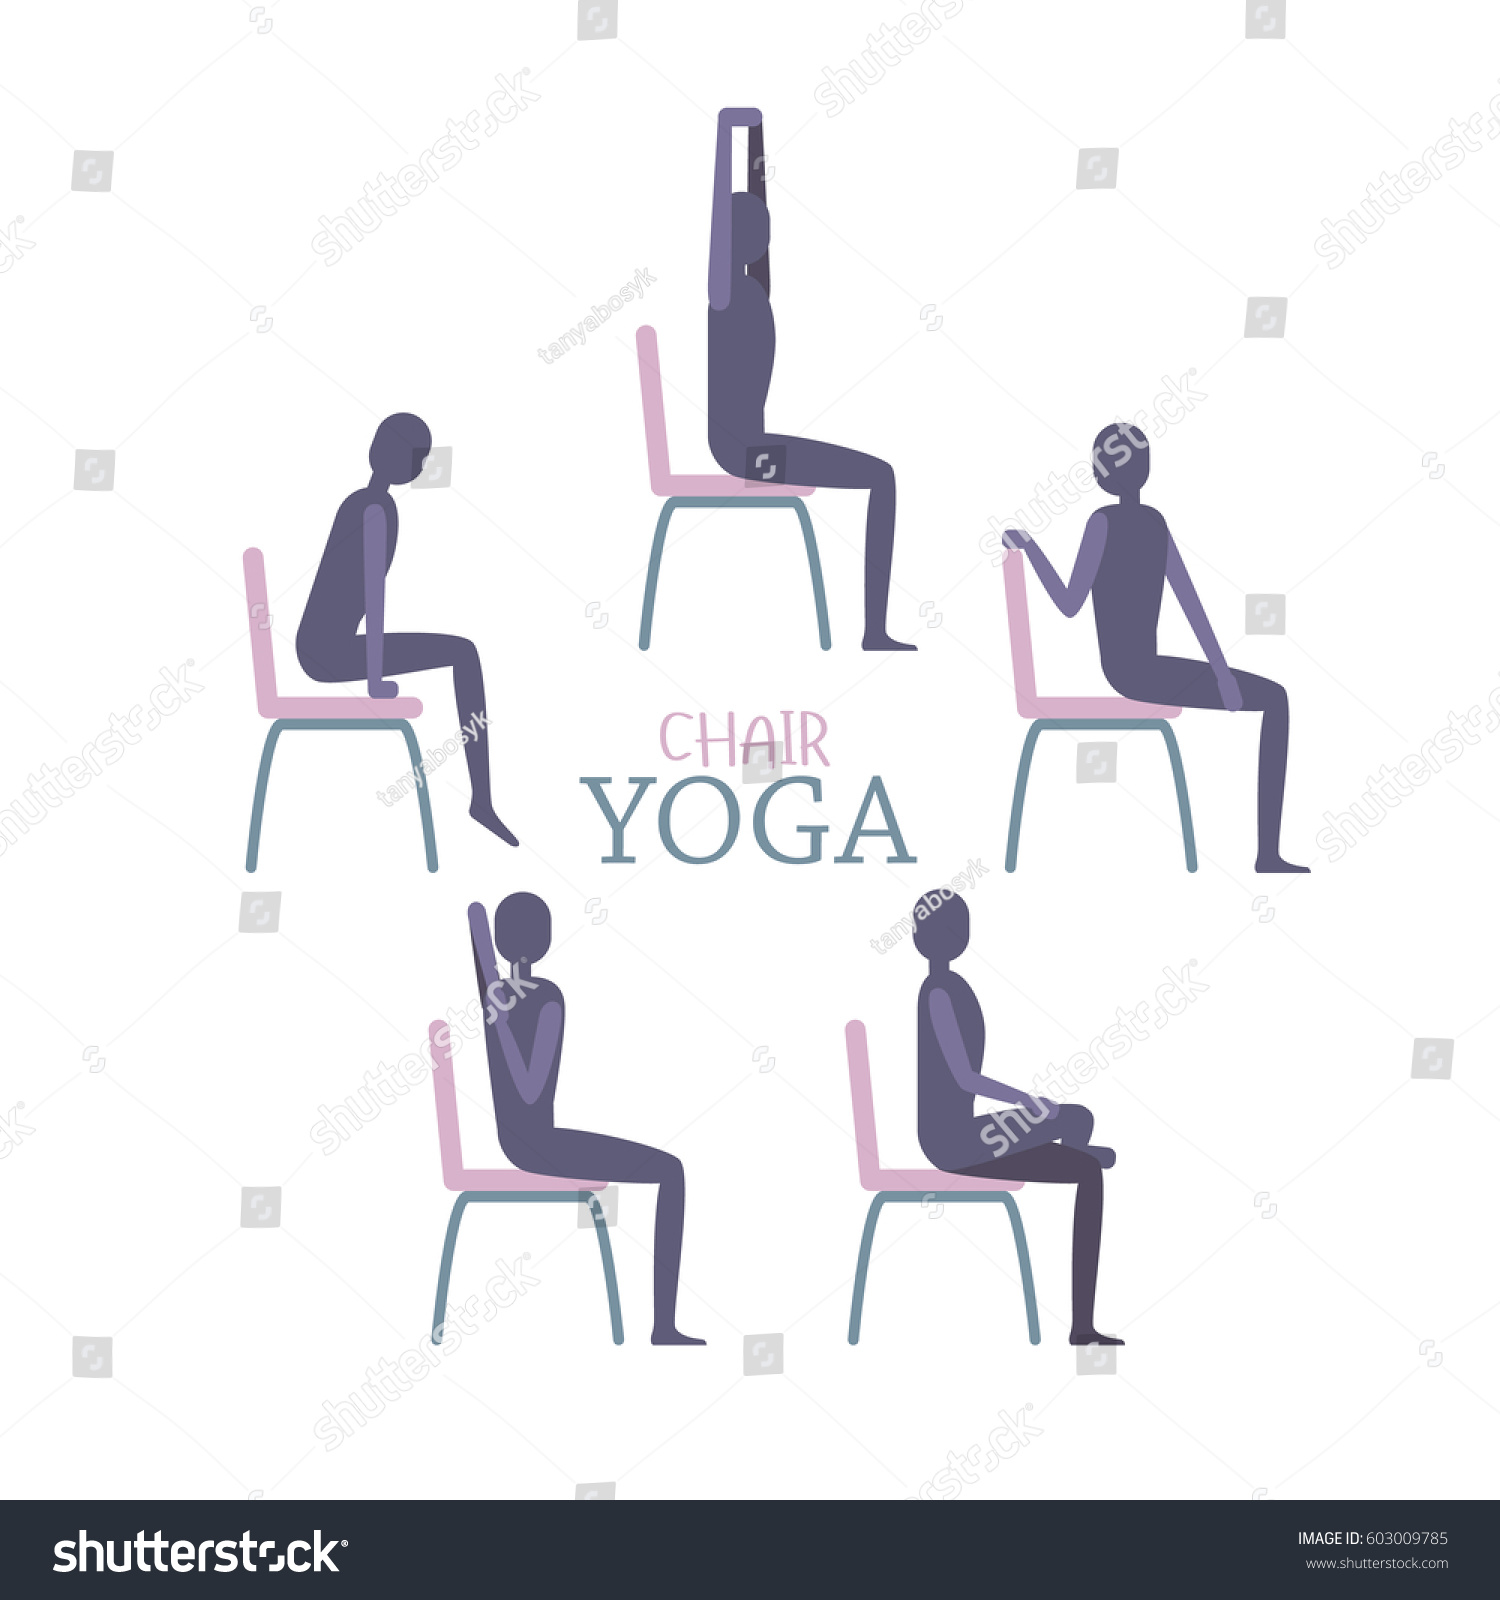 Chair yoga poses - Vector Illustration Of Man Or Woman Sitting On A Chair In Yoga Poses Relaxing And